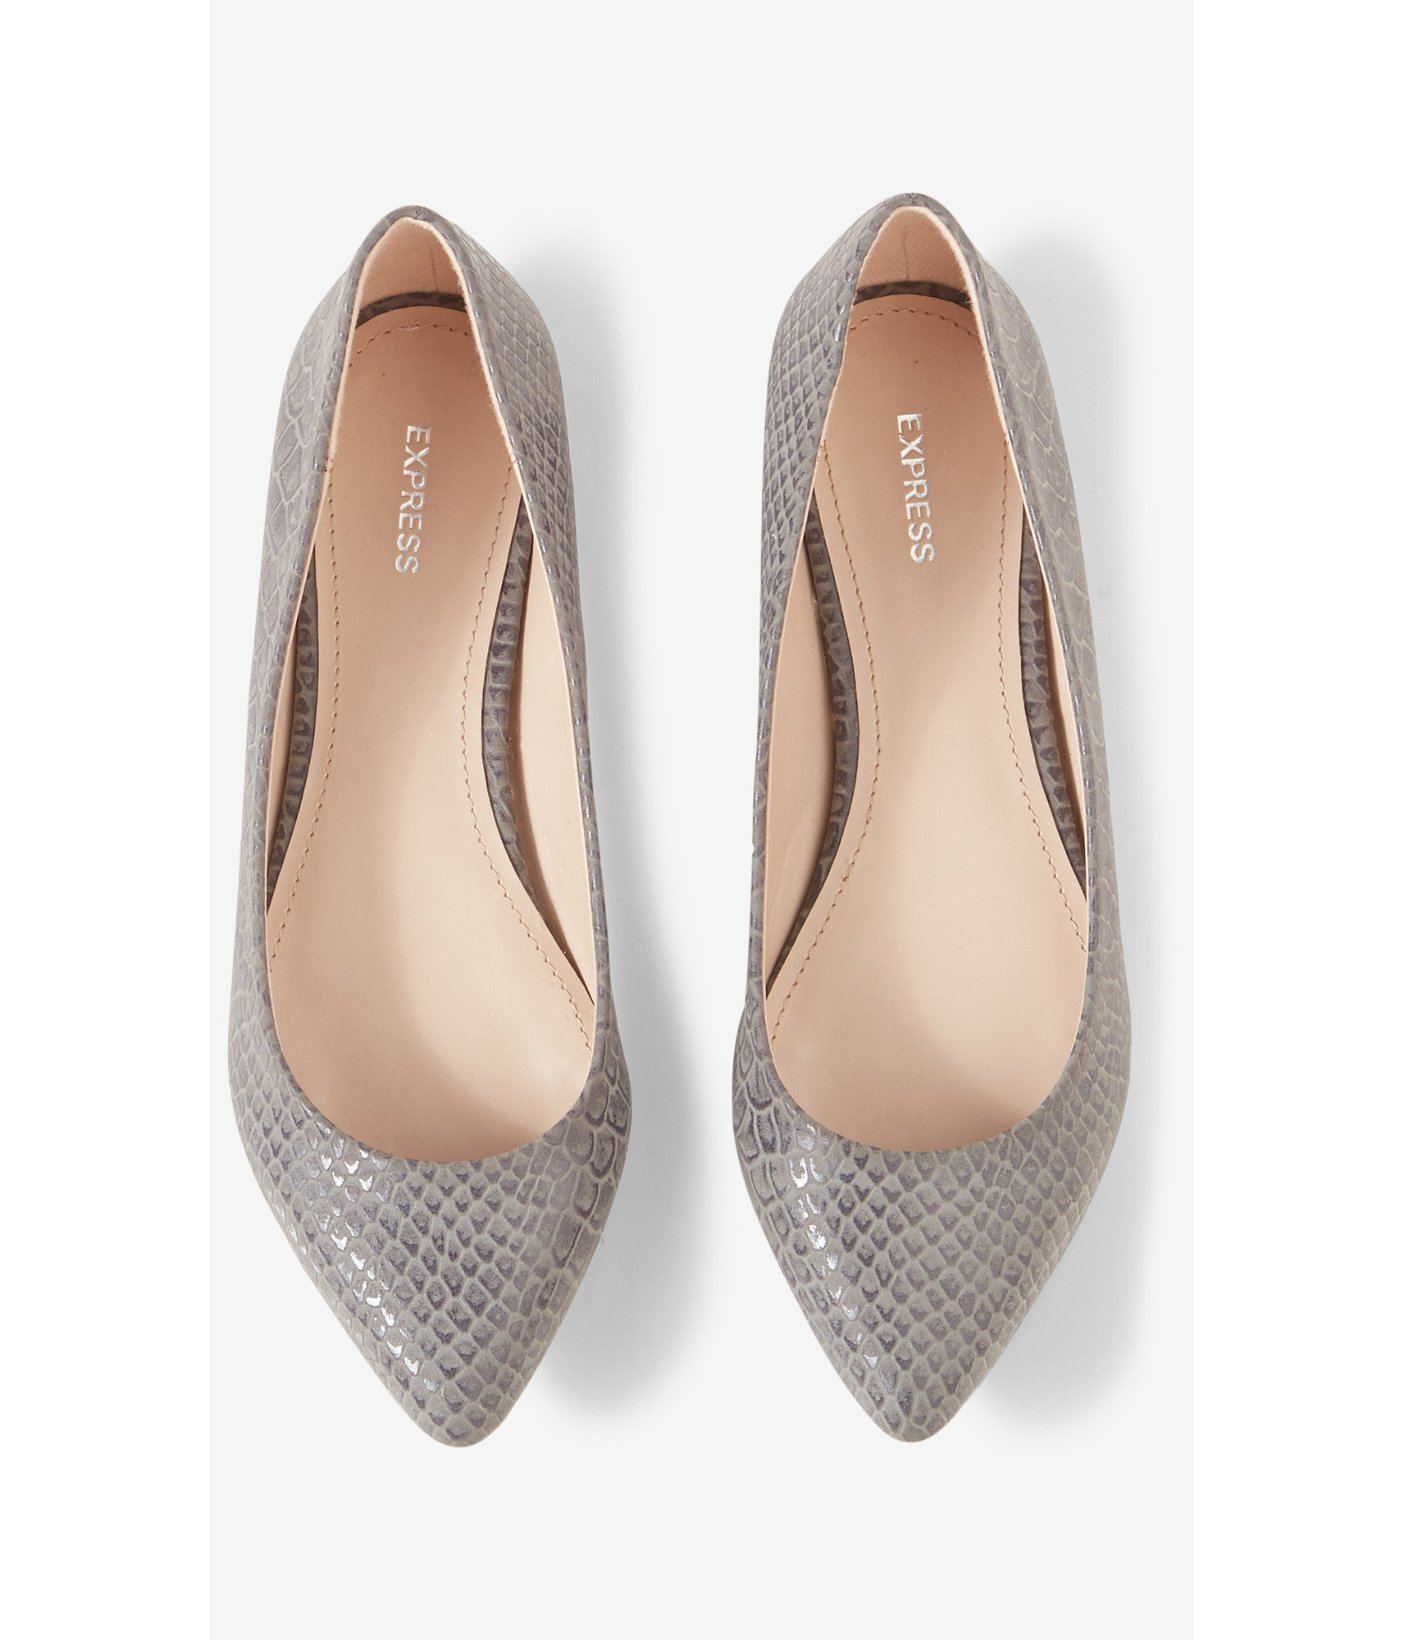 Pointed Toe Flats lyst - express snakeskin print pointed toe flat in metallic JOVHRLR